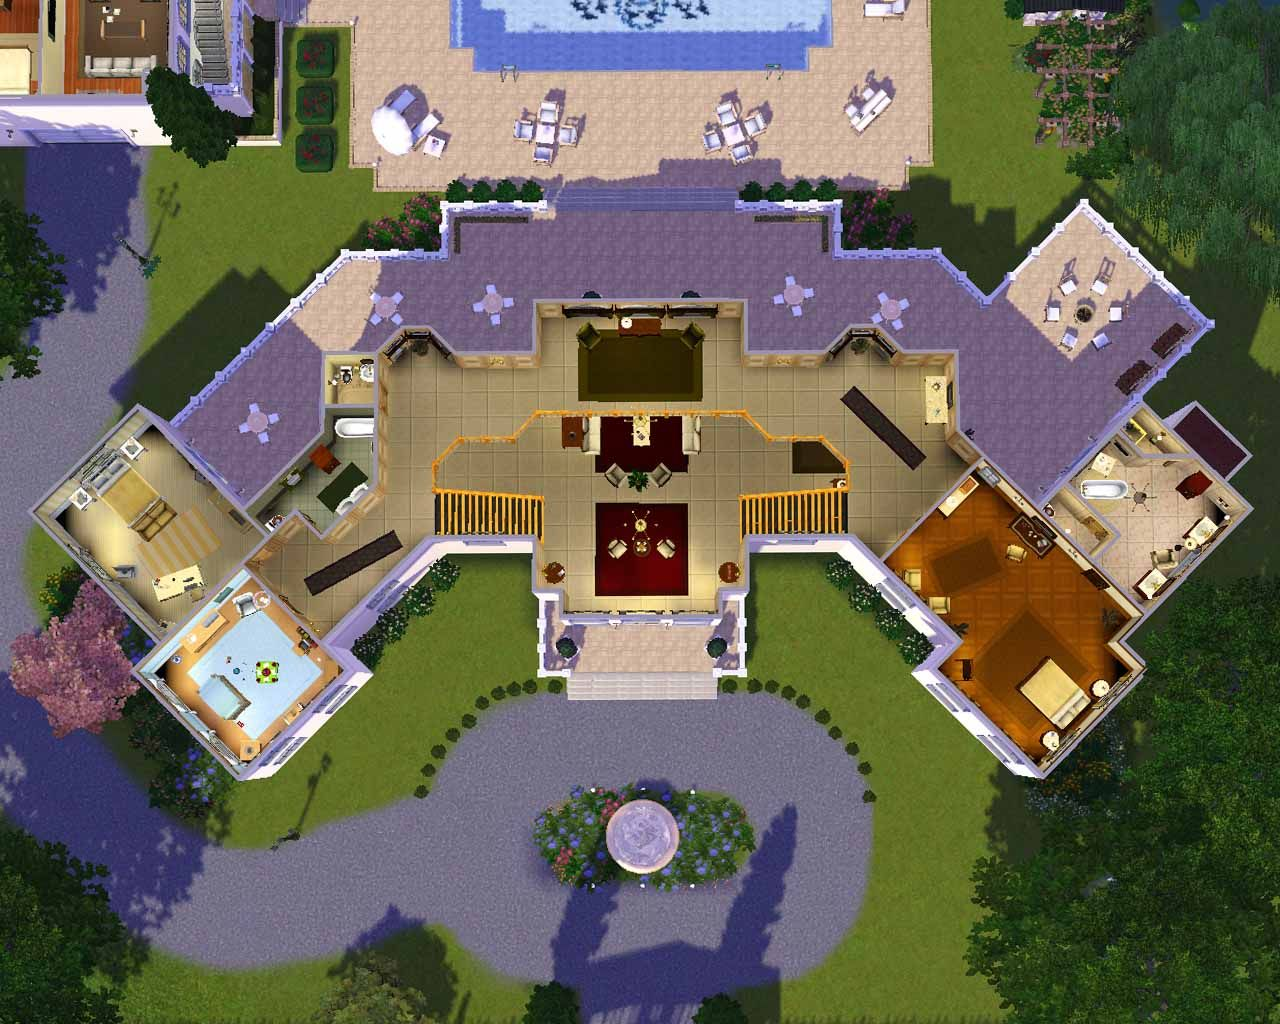 The sims 3 house designs google search idea the sims for Estate blueprints